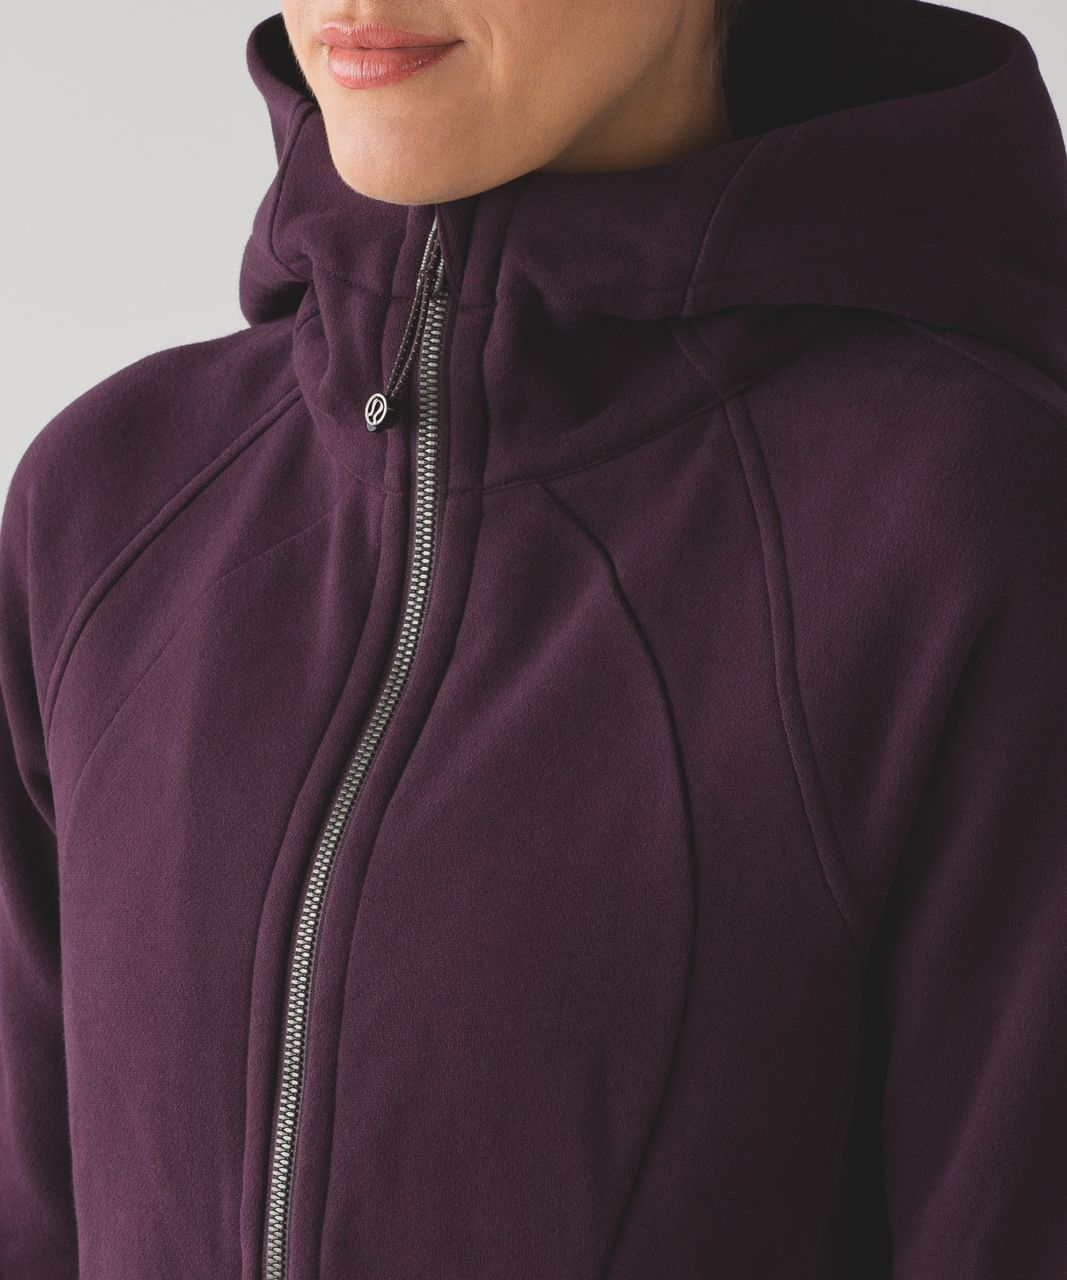 Lululemon Scuba Hoodie *Light Cotton Fleece - Black Cherry